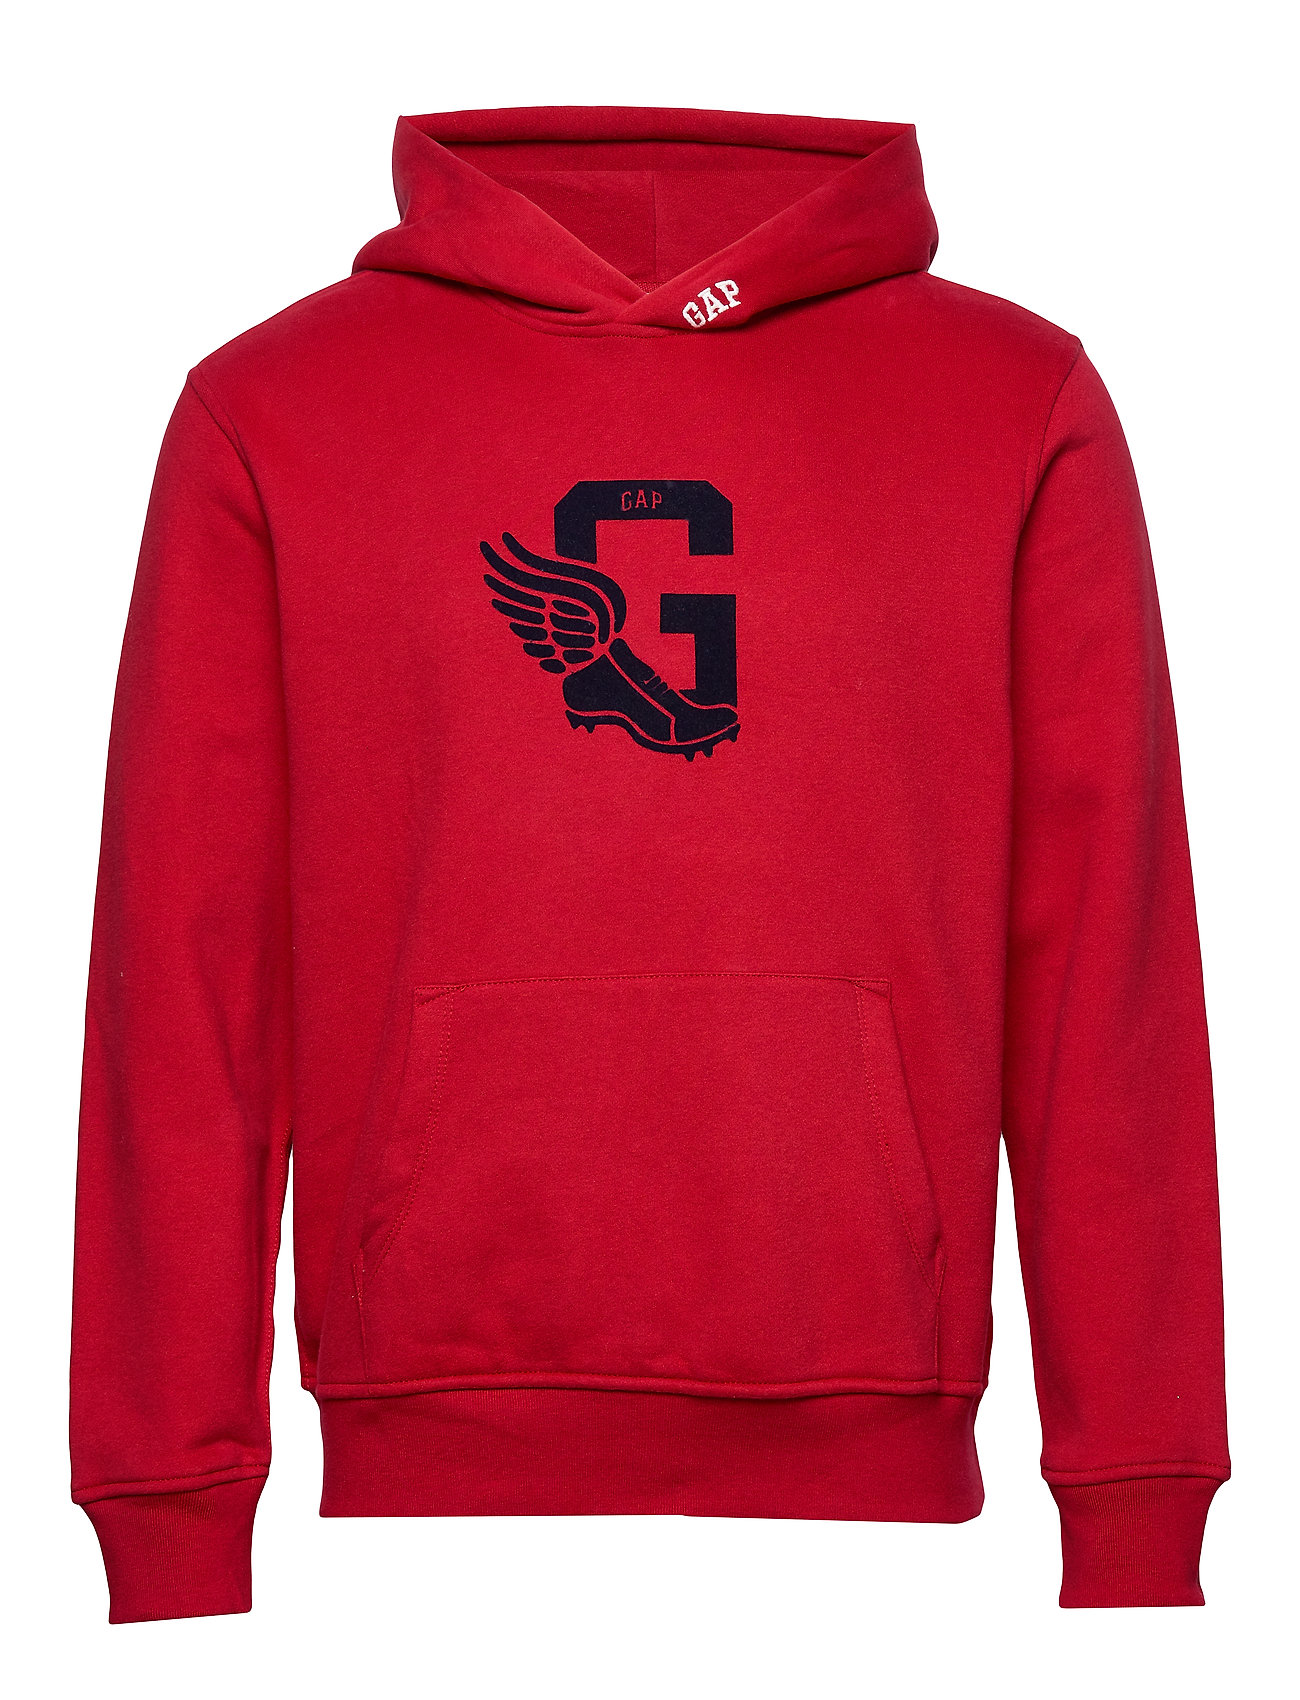 GAP Gap Athletic Logo Pullover Hoodie - LASALLE RED